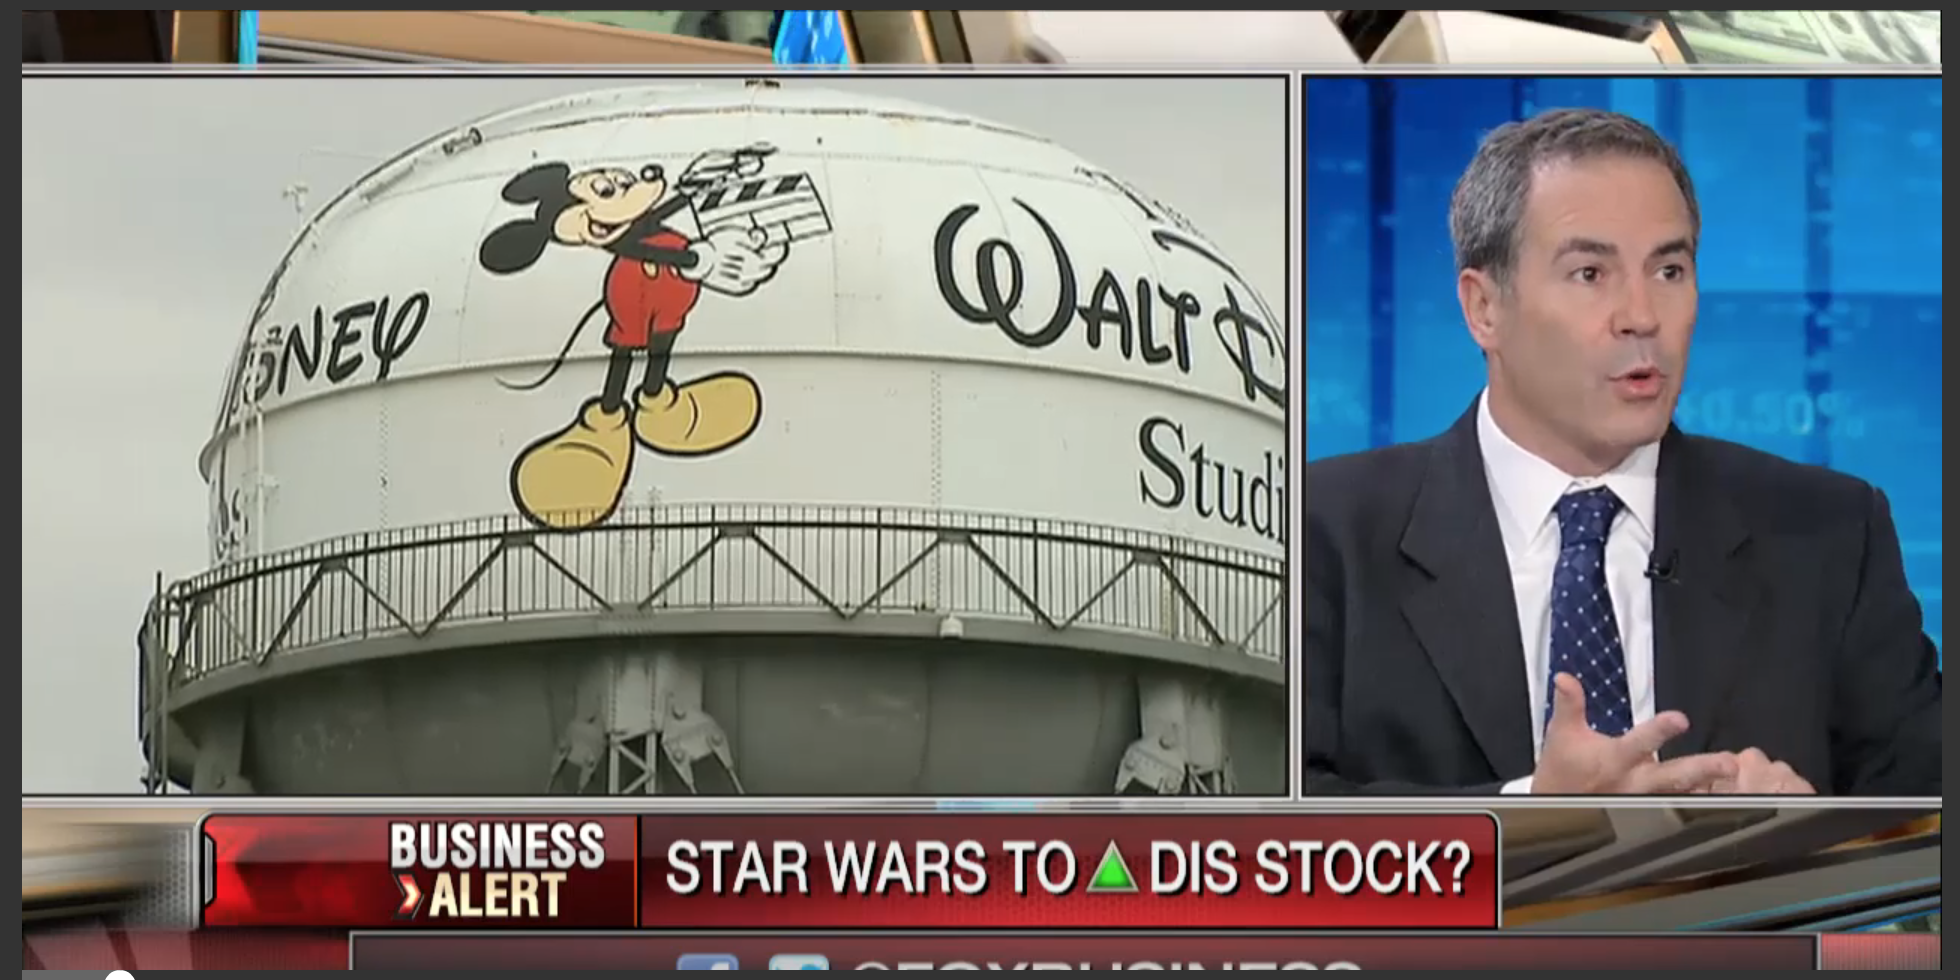 How could the new Star Wars movie impact Disney stock?